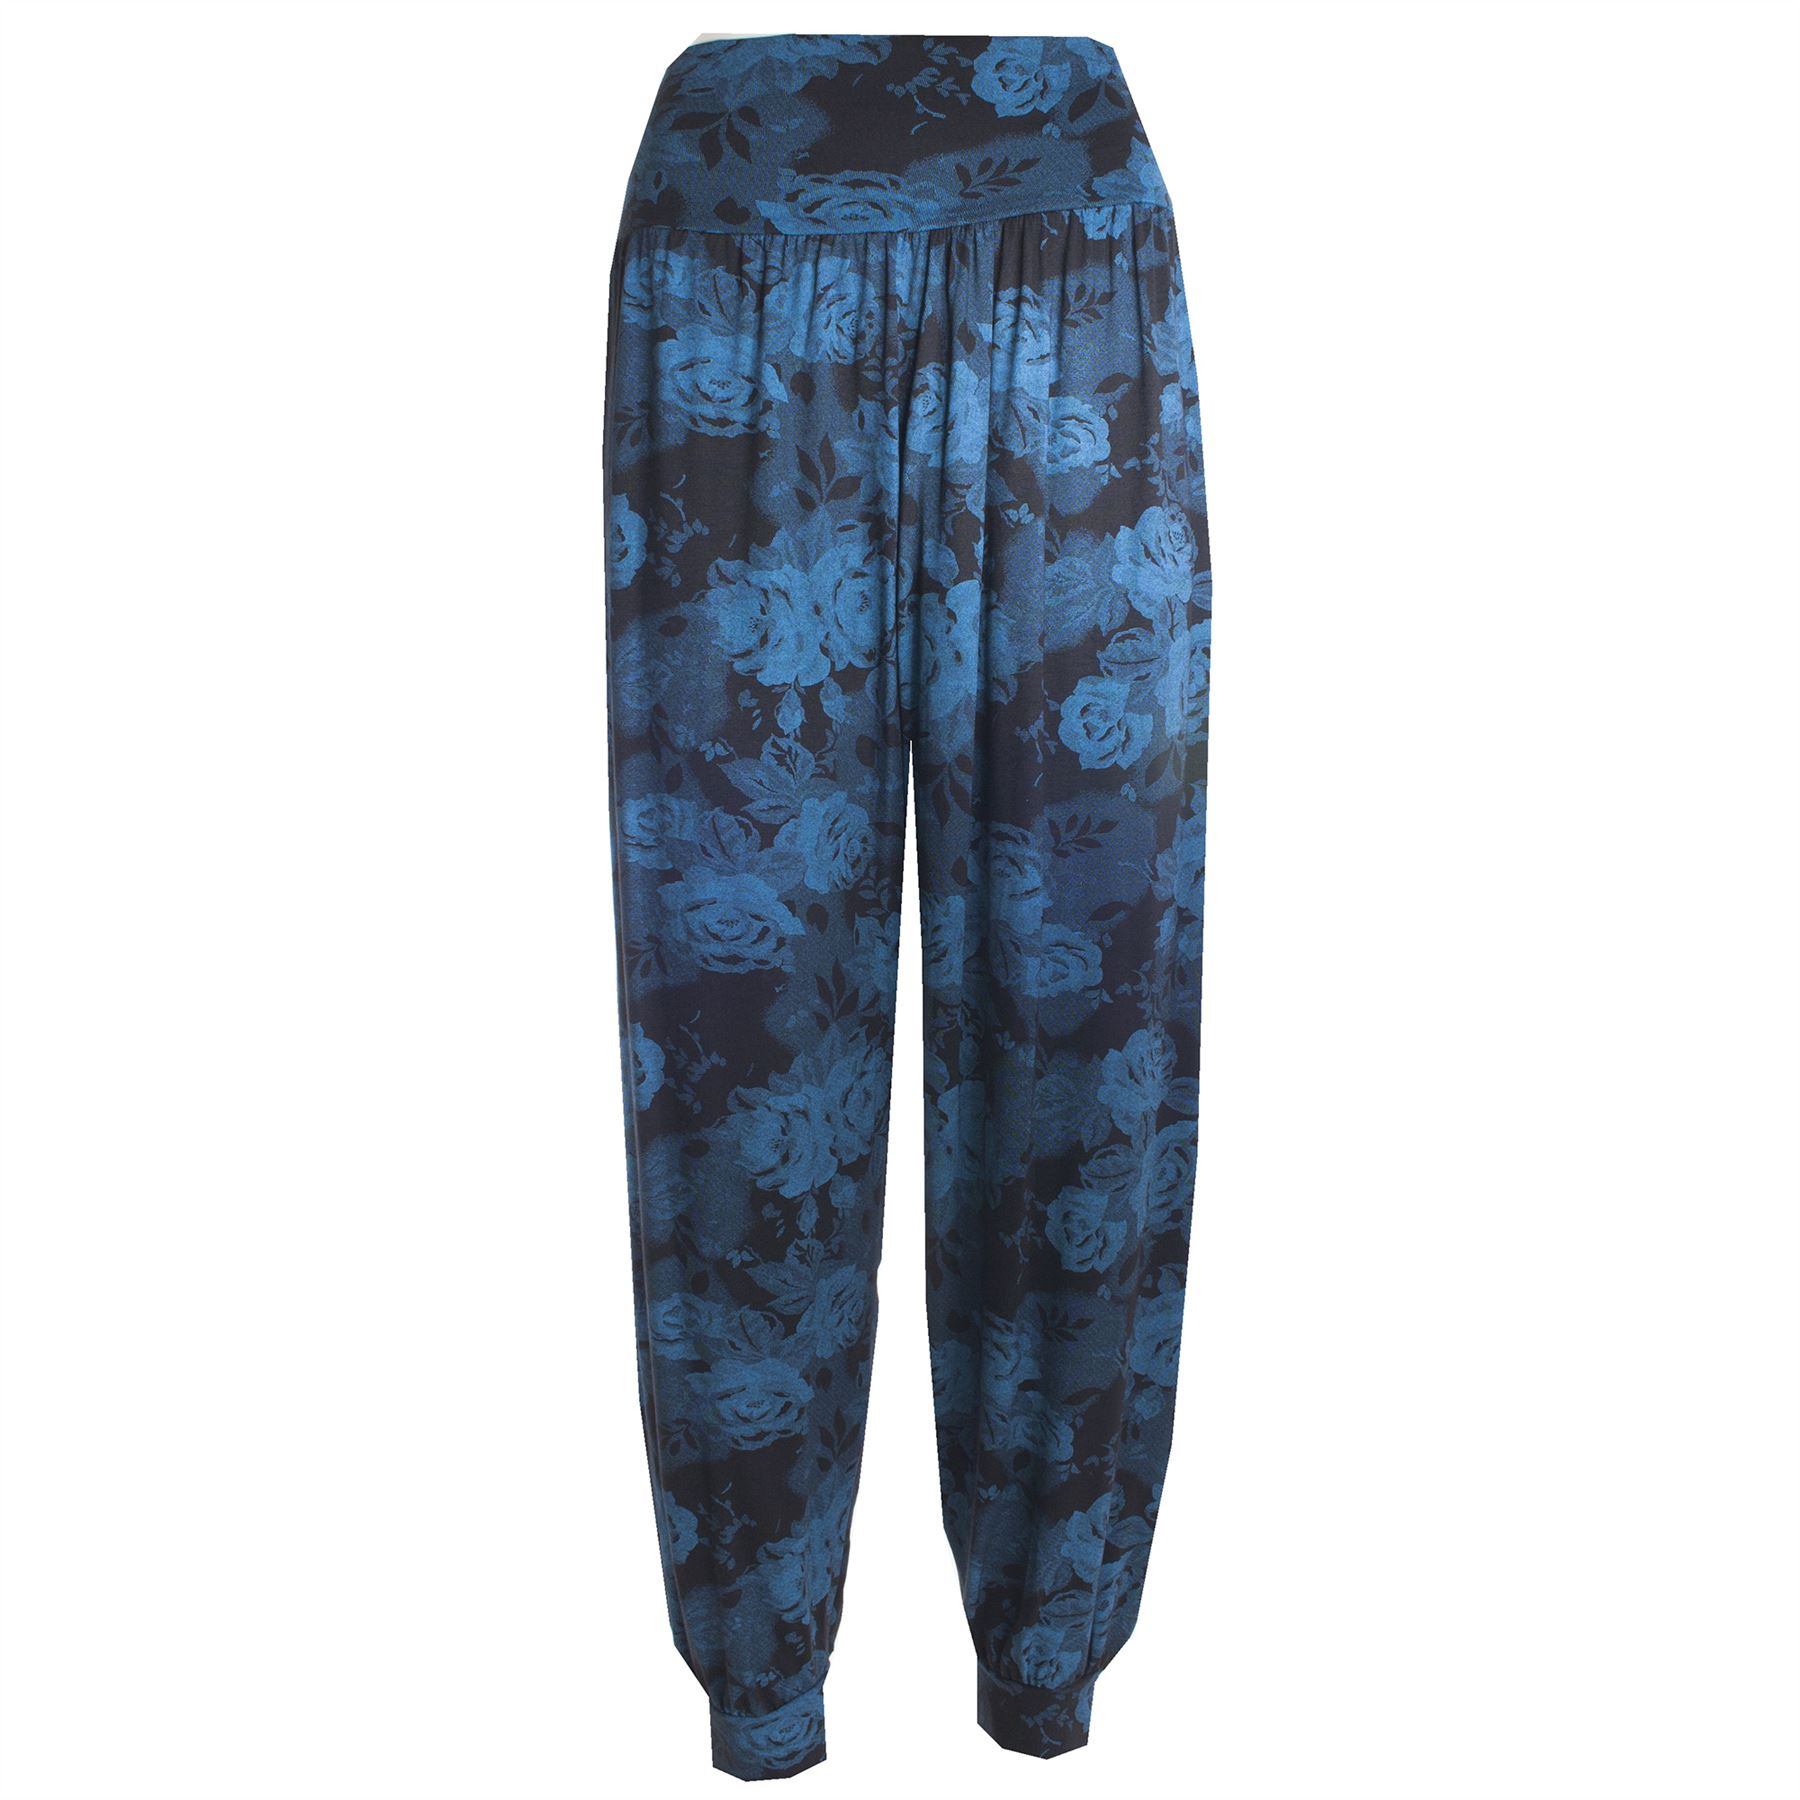 Womens Ladies Printed Ali Baba Bottoms Harem Pants Trousers ...